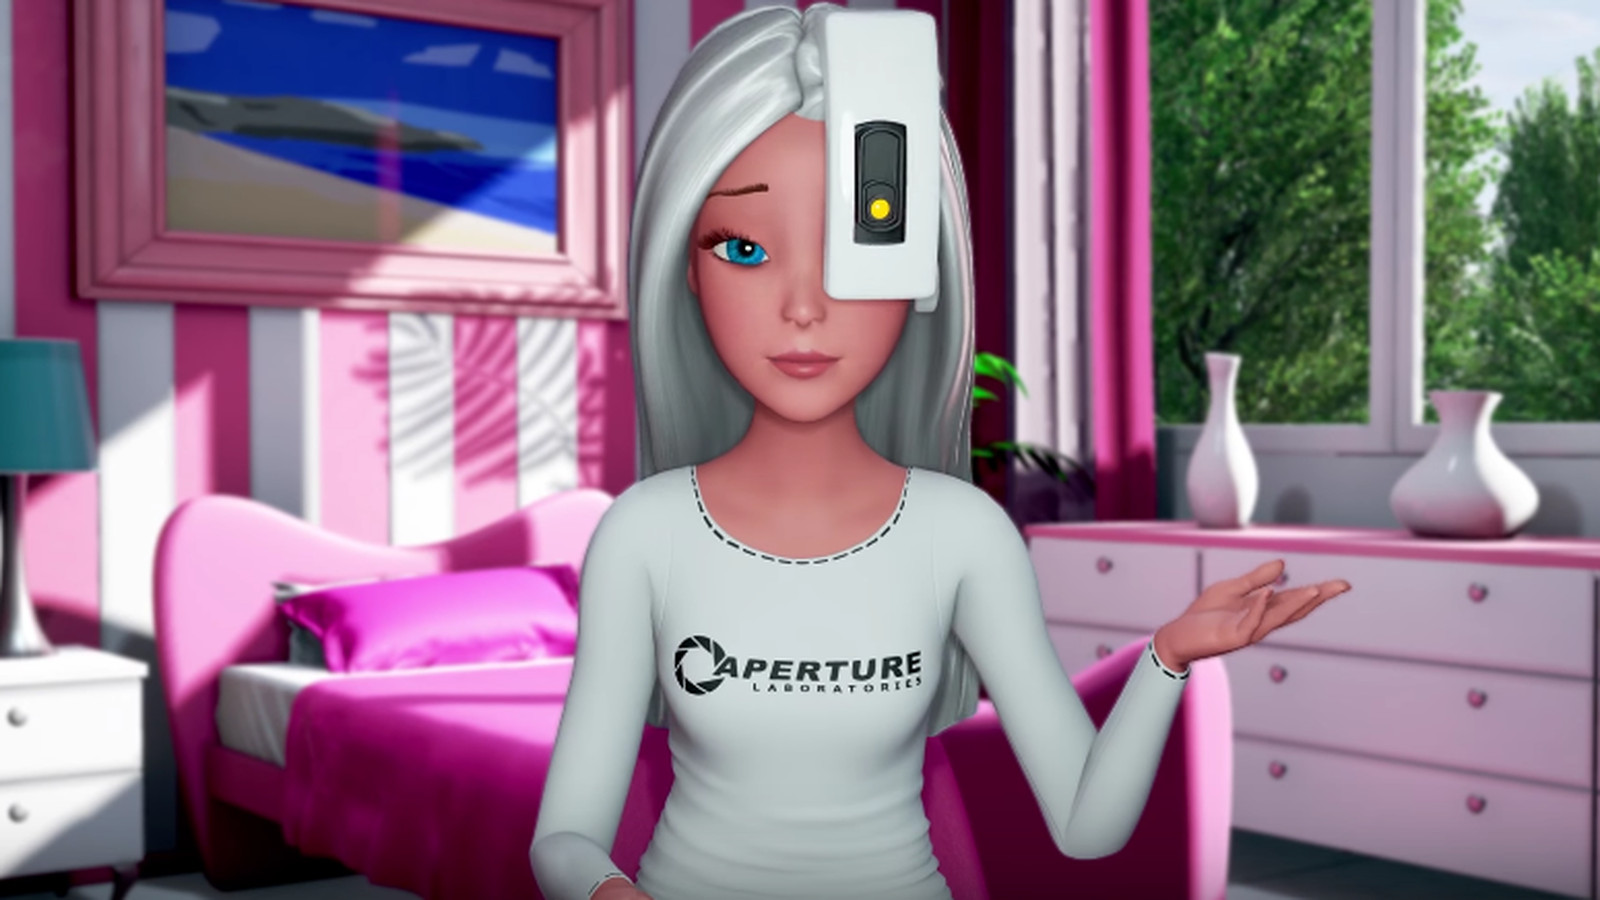 One of Portal's biggest fans is, of all people, Barbie